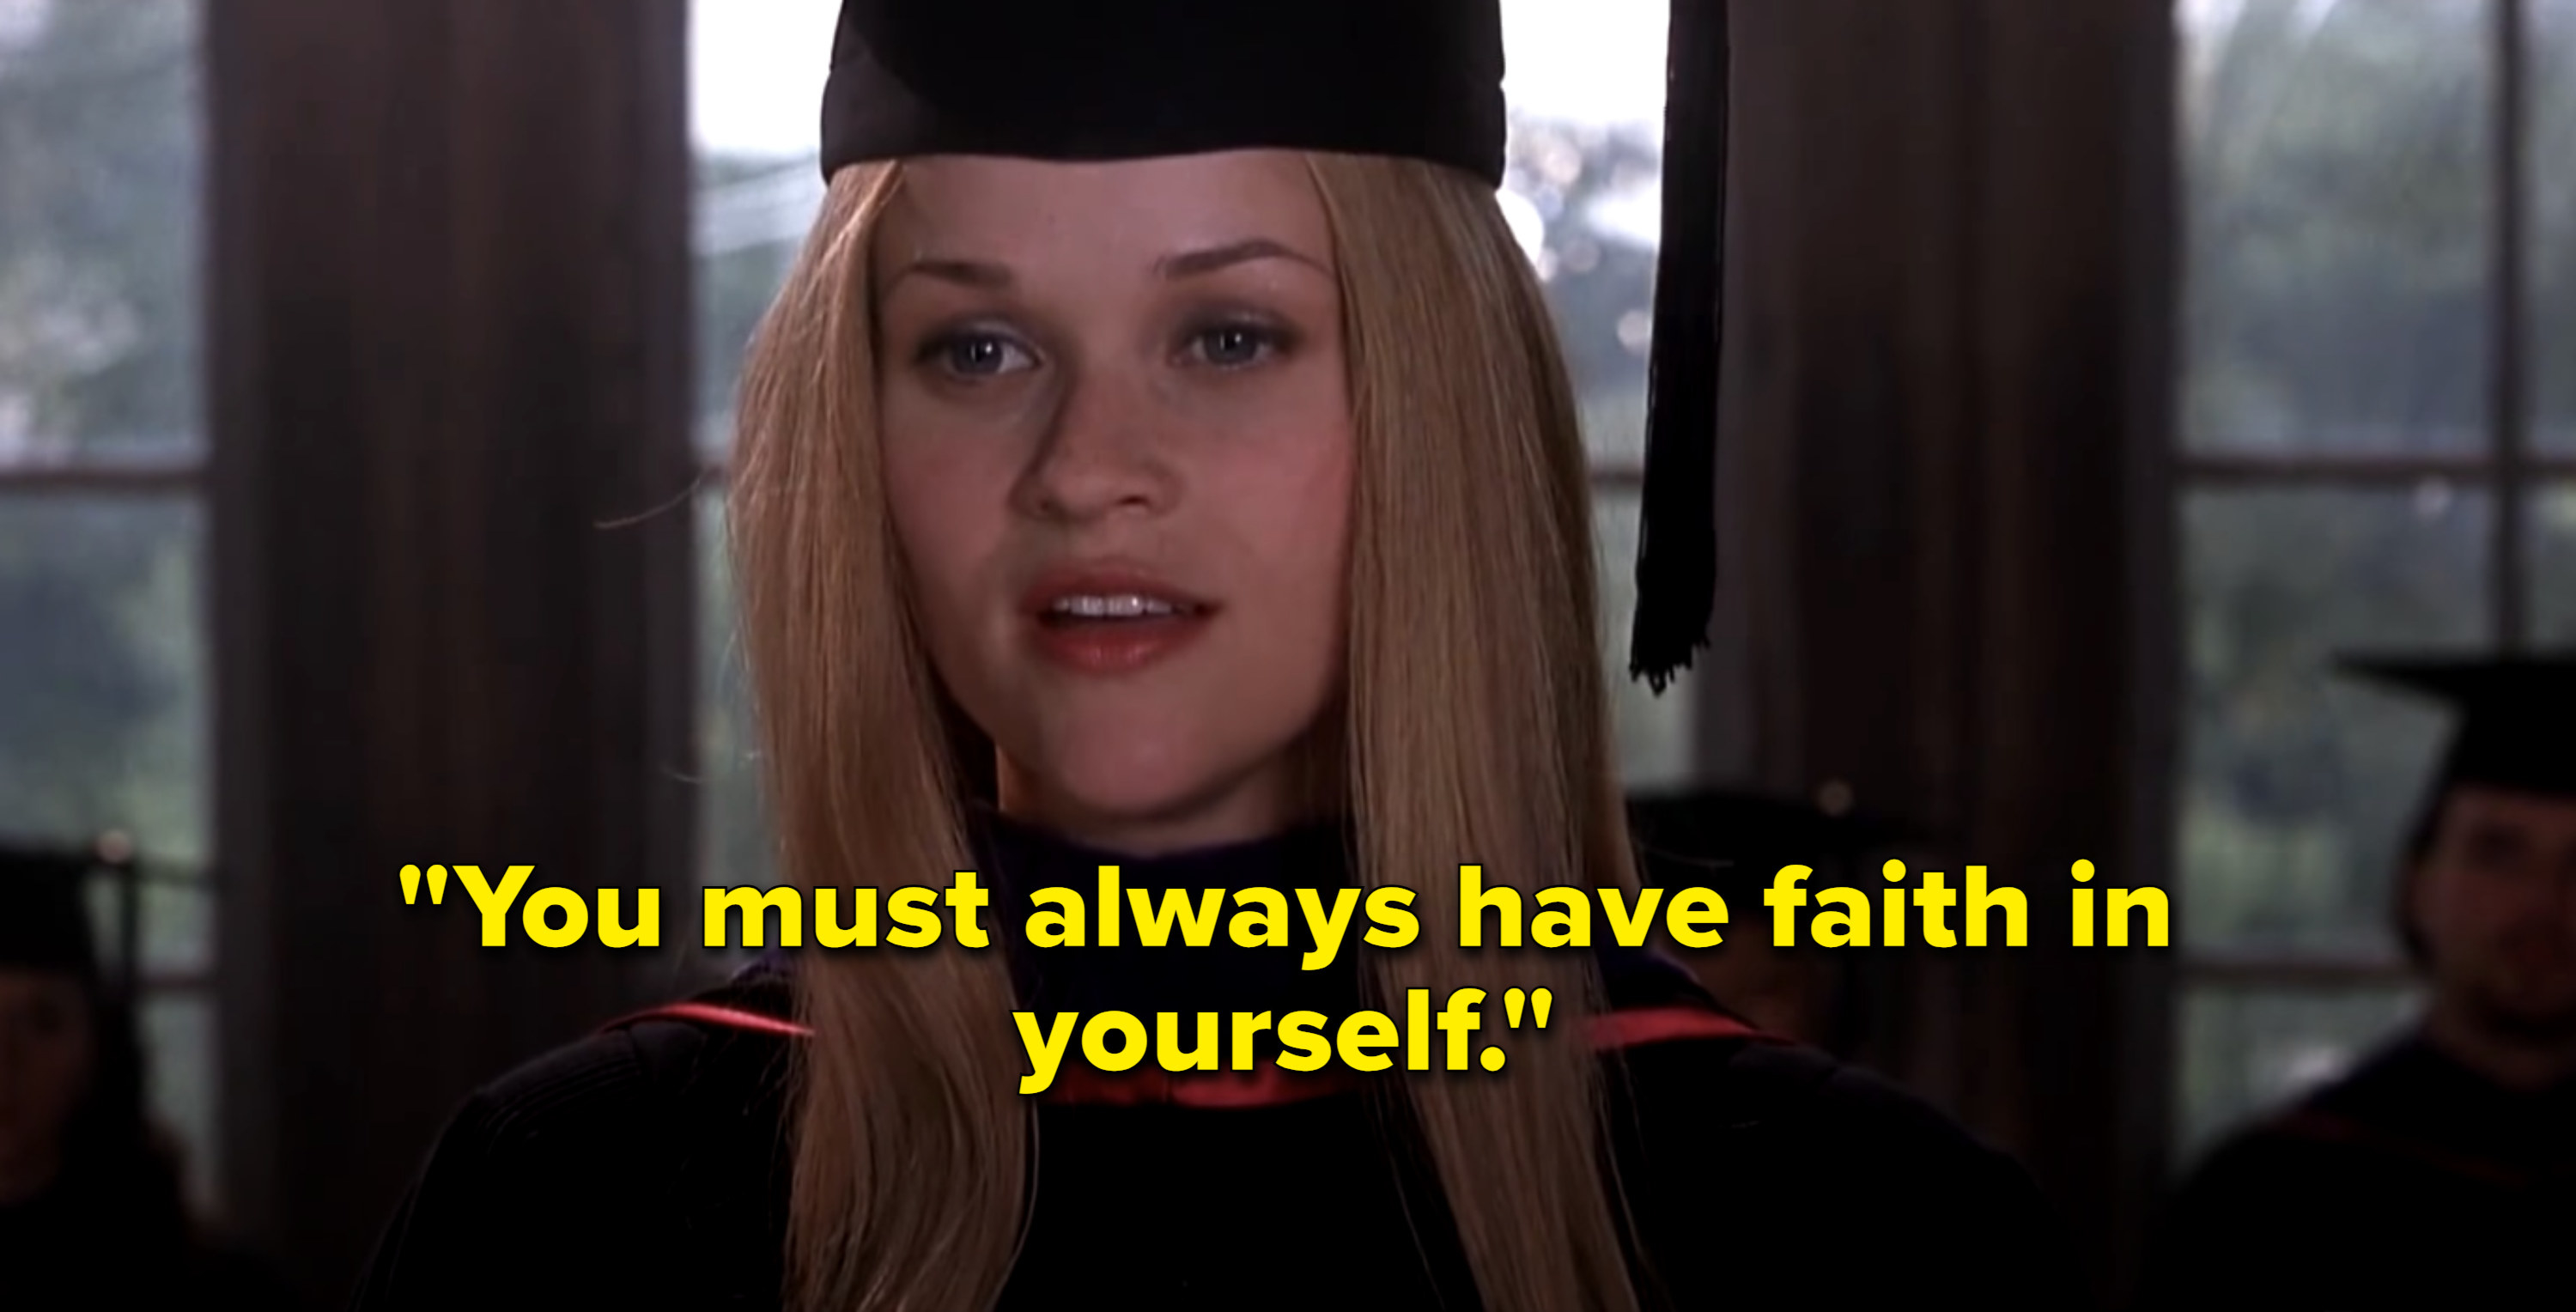 Elle Woods delivering a speech at her law school graduation